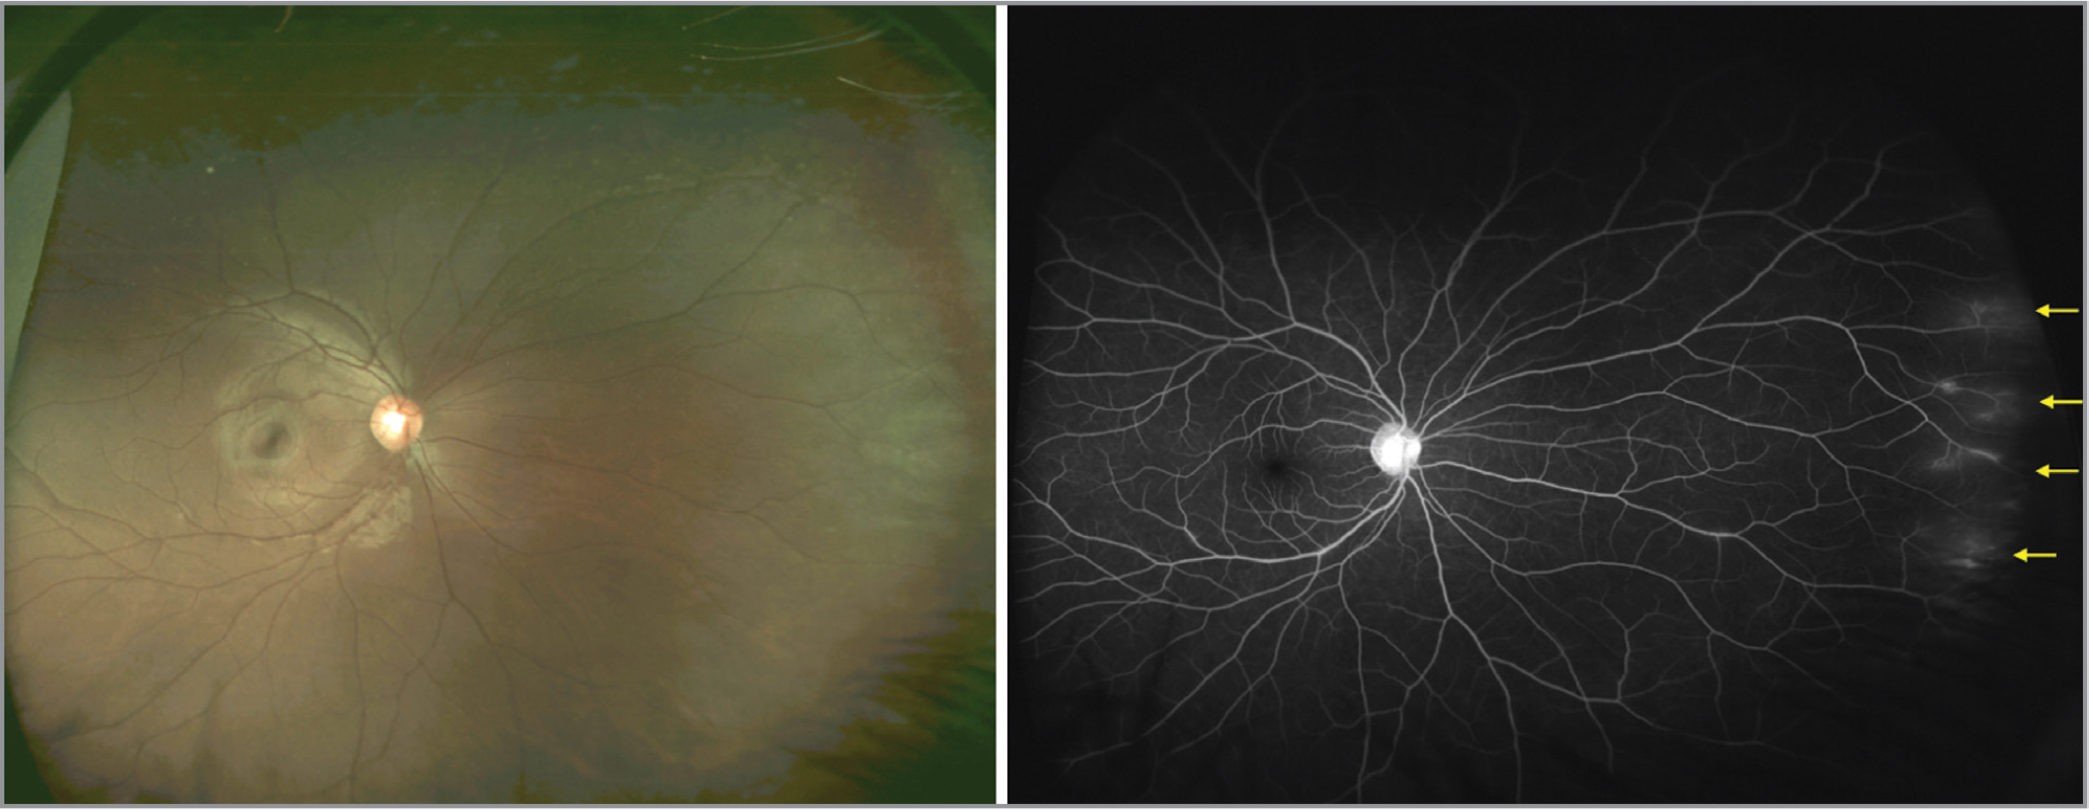 Fundus image (left) and widefield fluorescein angiography (right) of the fellow unaffected eye in a patient with Coat's disease demonstrating peripheral vascular leakage (yellow arrows).